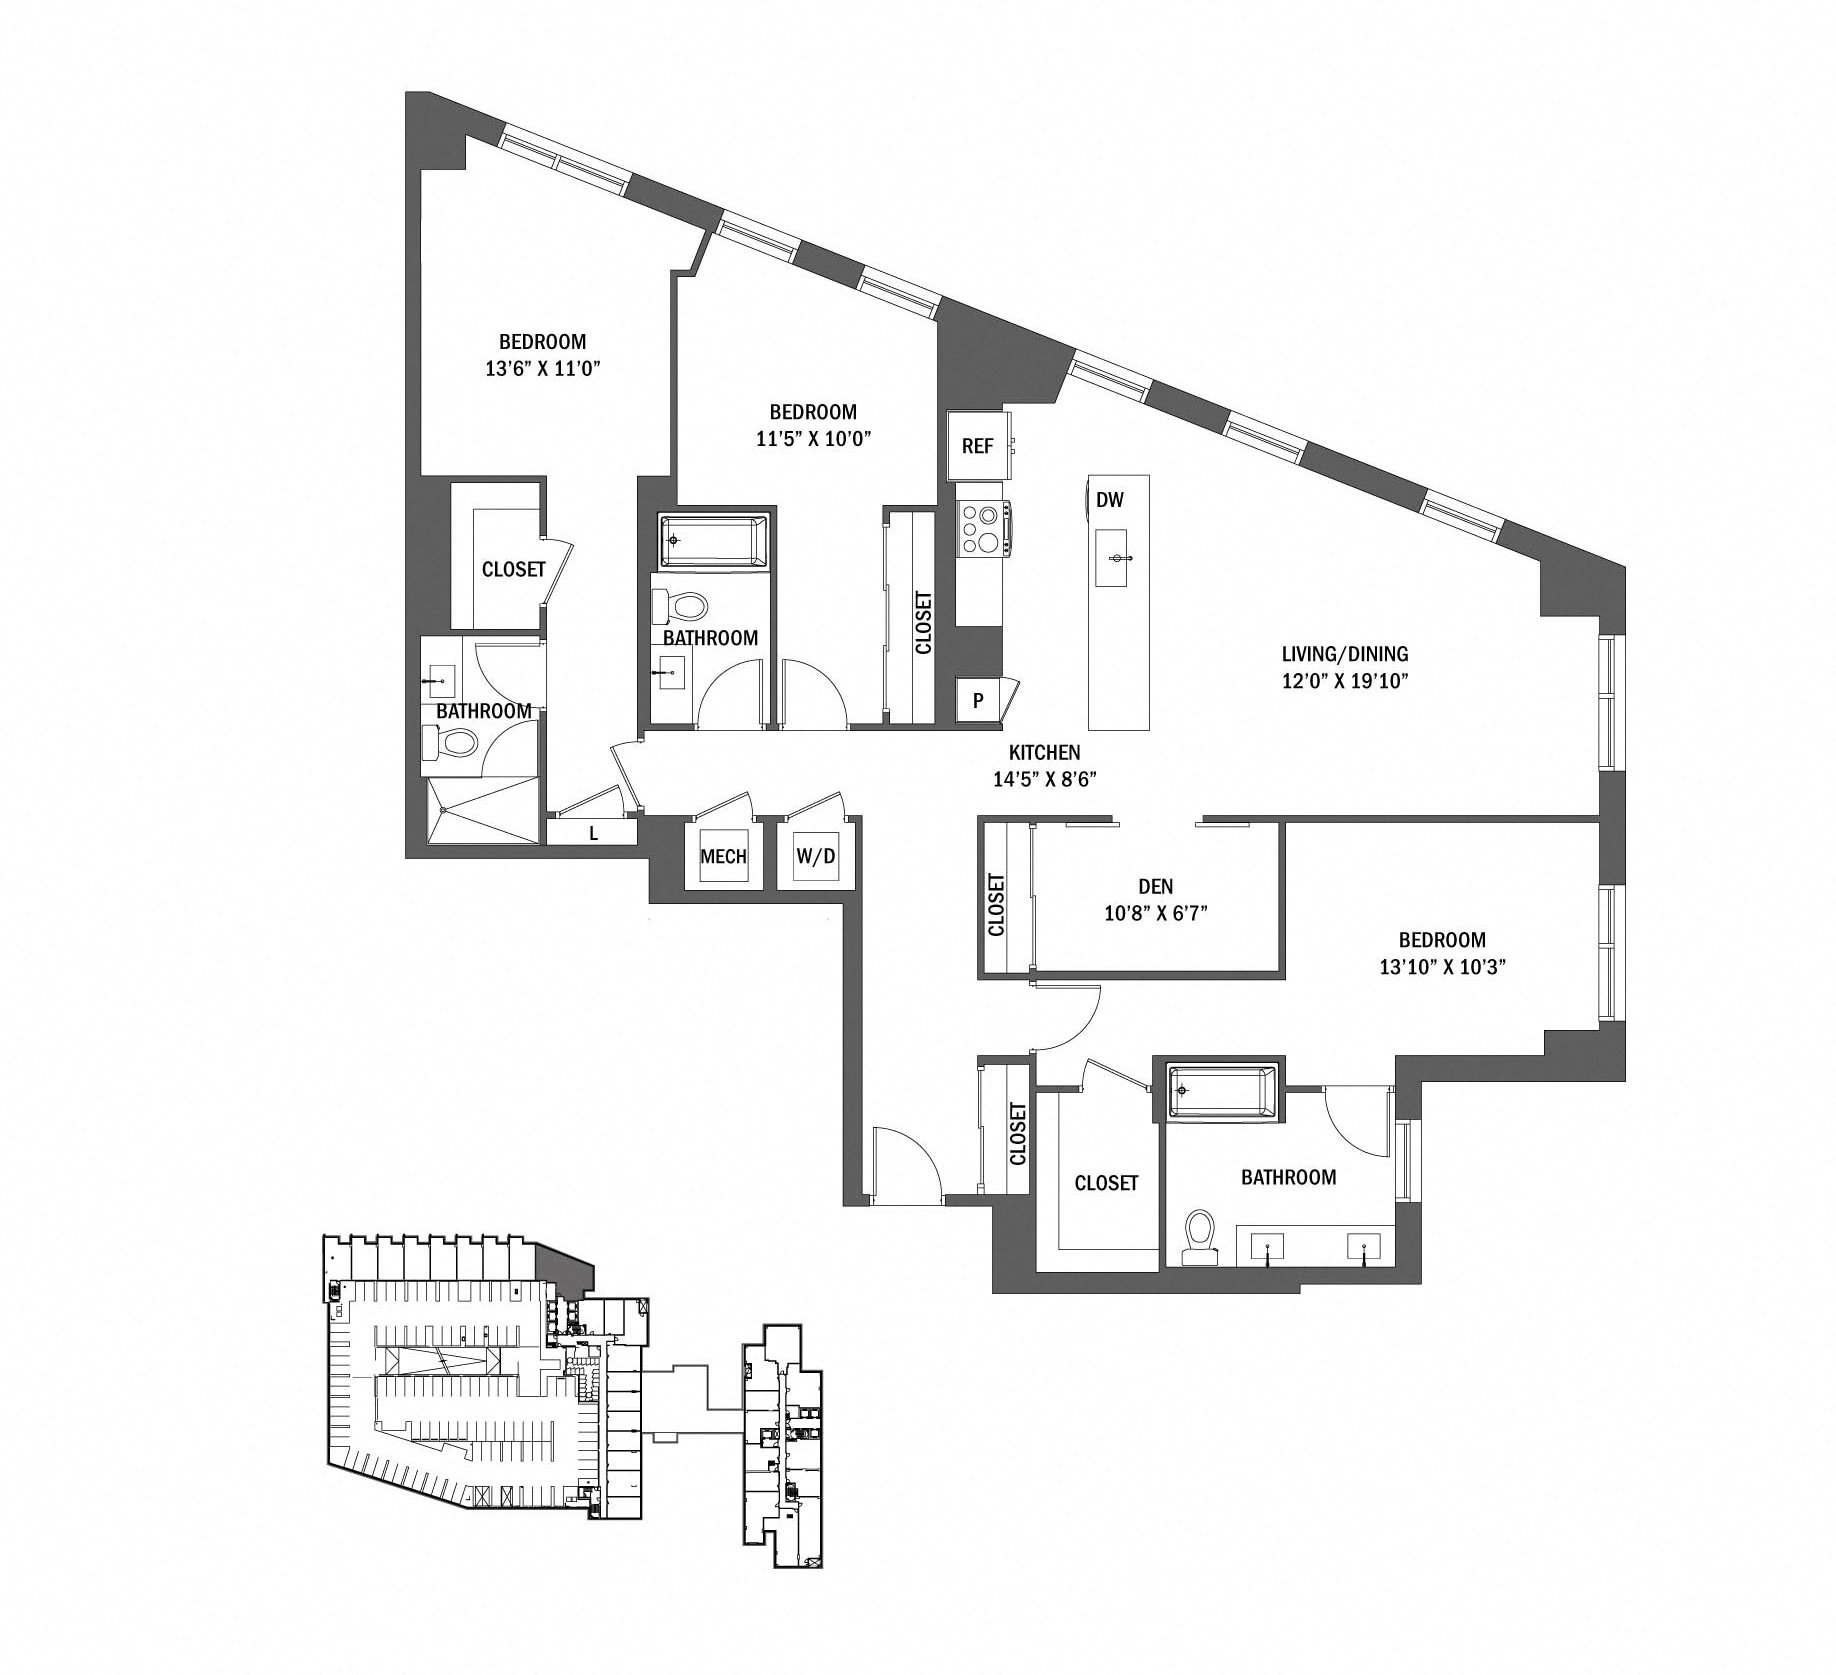 P0625338 n09 php 2 floorplan